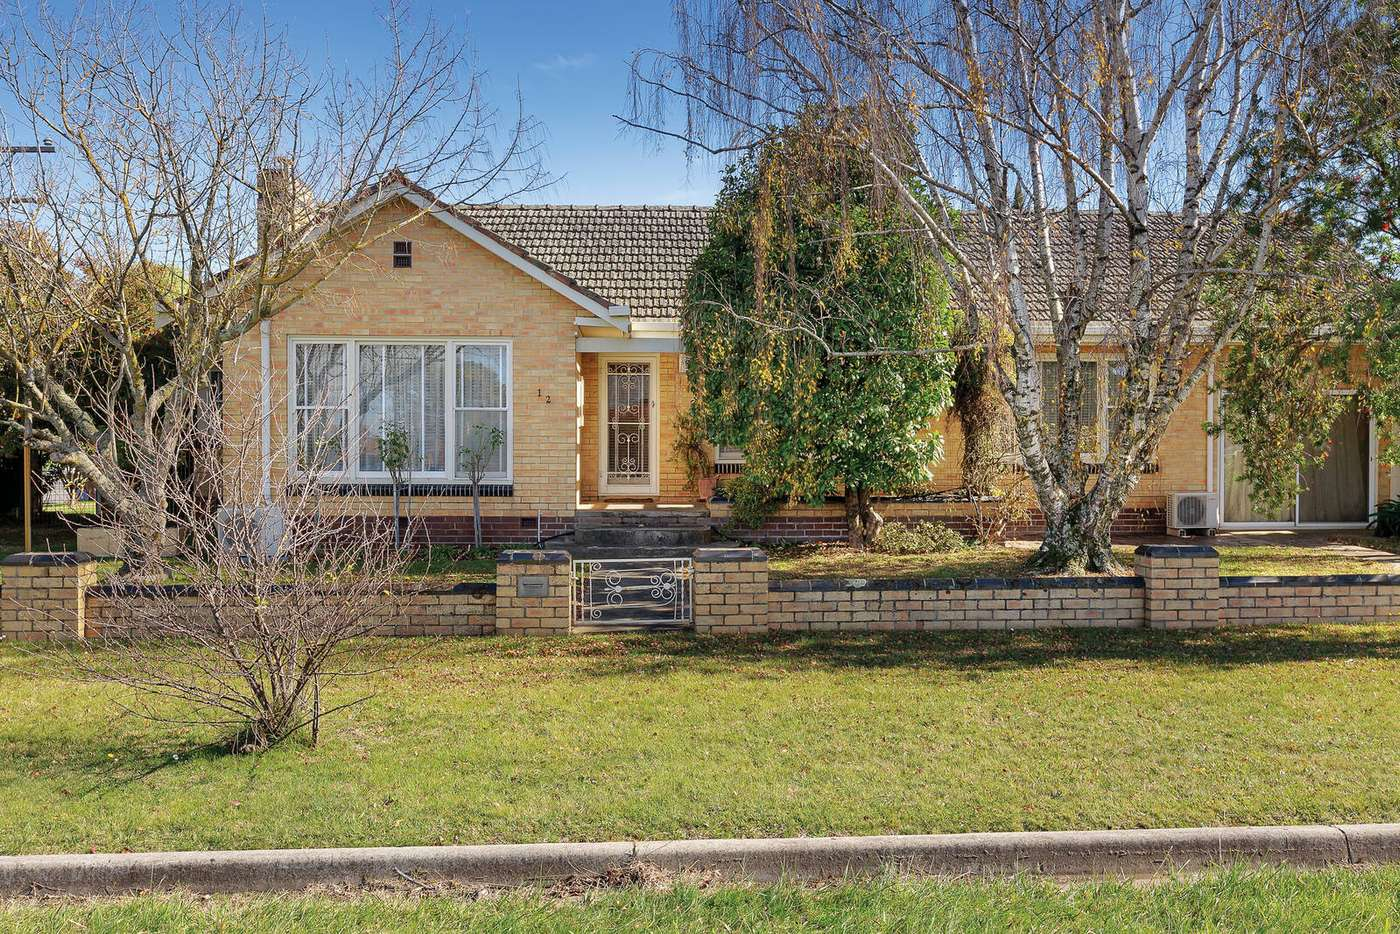 Main view of Homely house listing, 12 Sutton Street, Delacombe VIC 3356